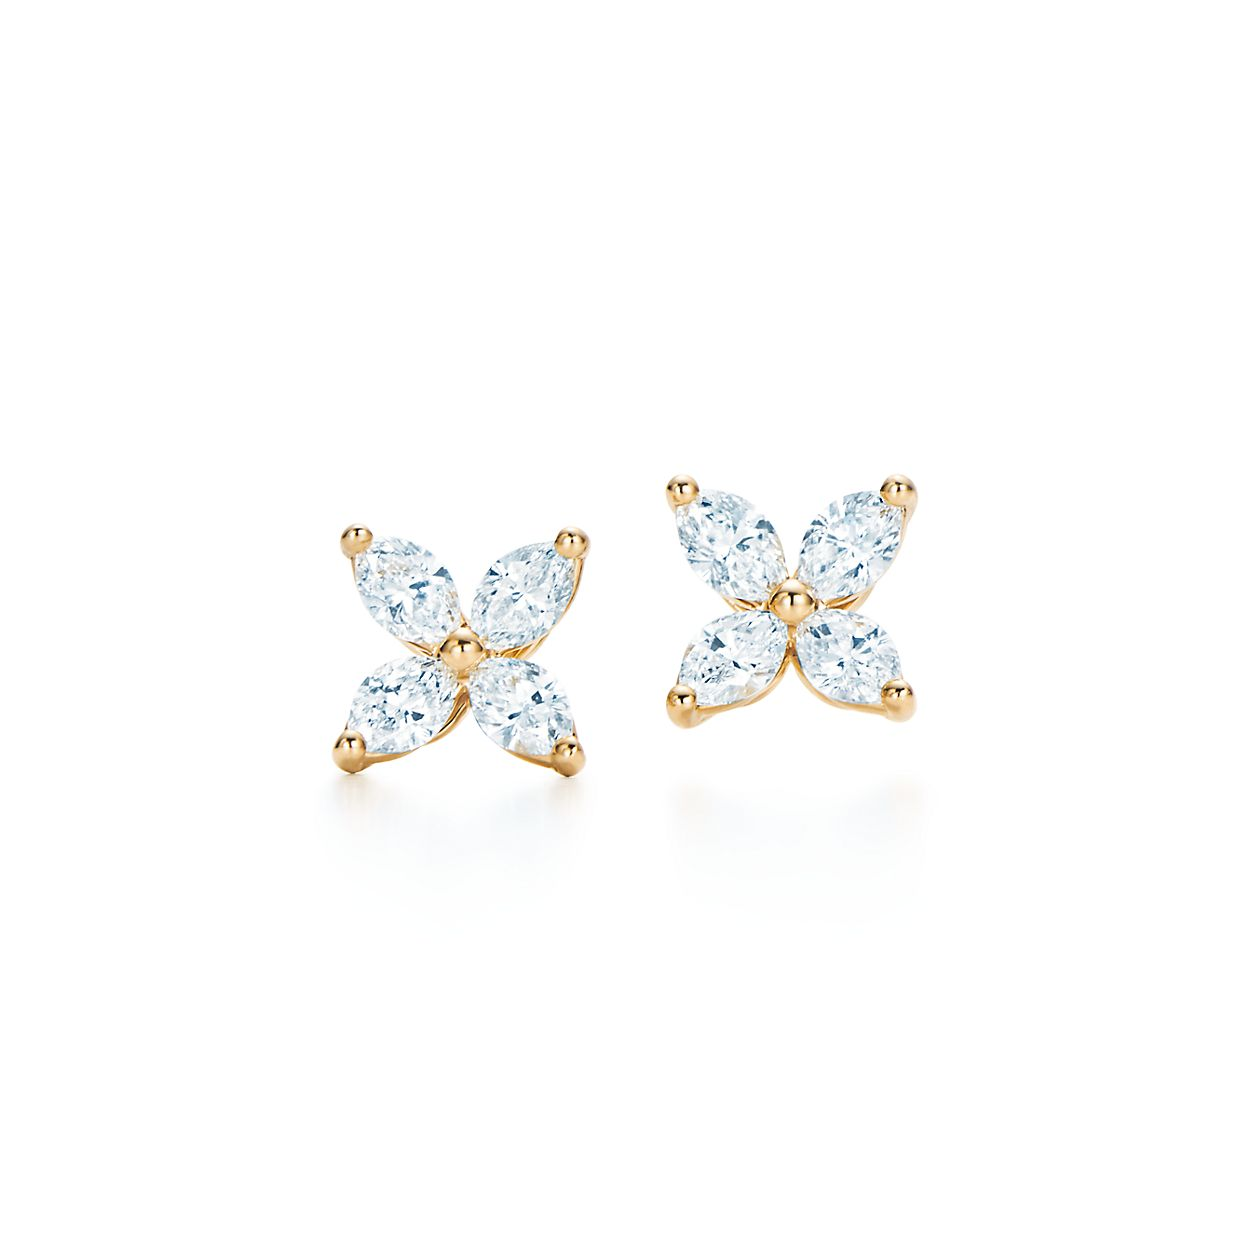 Tiffany Victoria Earrings